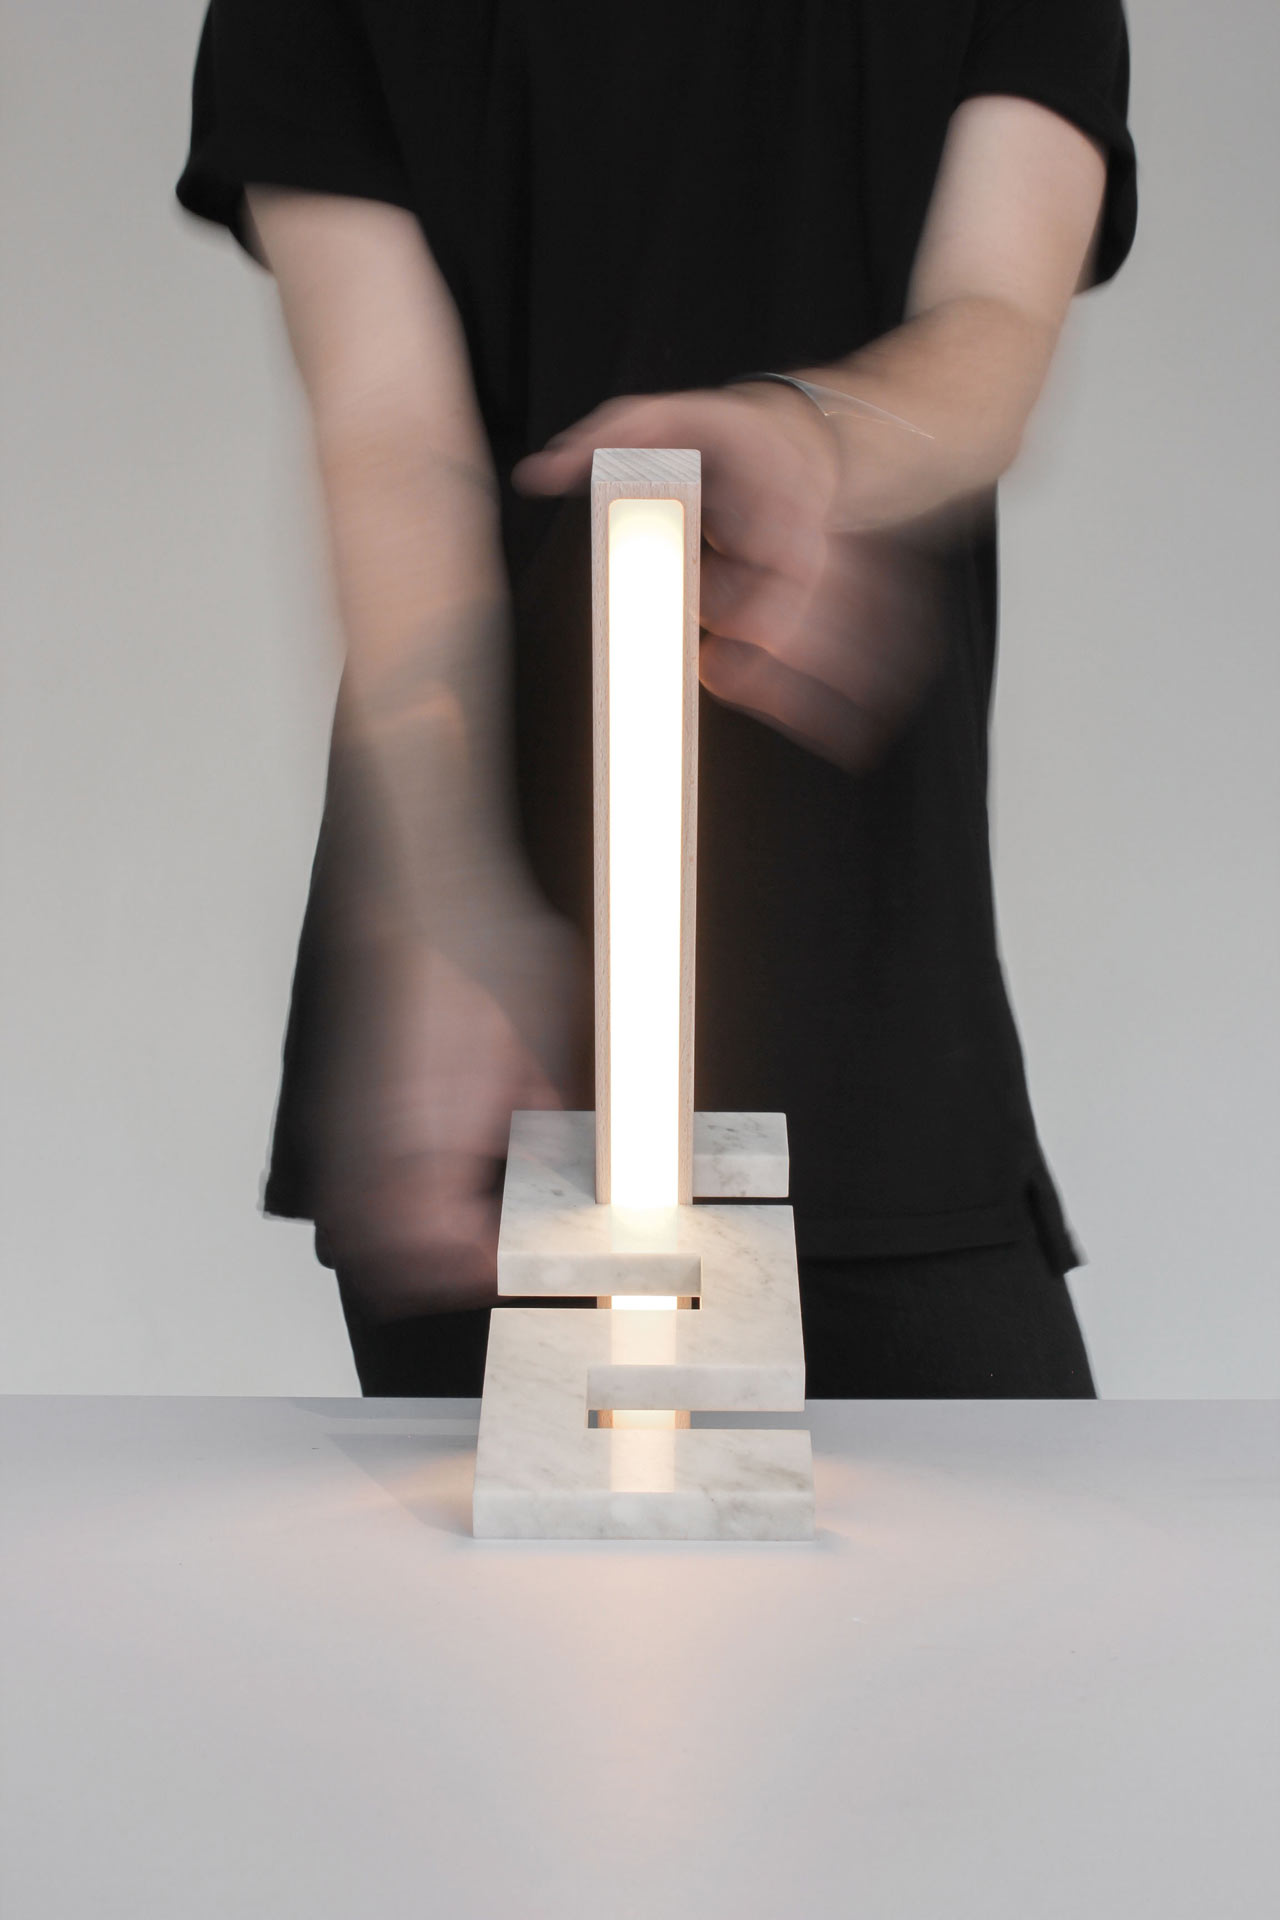 An Adjustable Light That Can be Reconfigured into Endless Forms